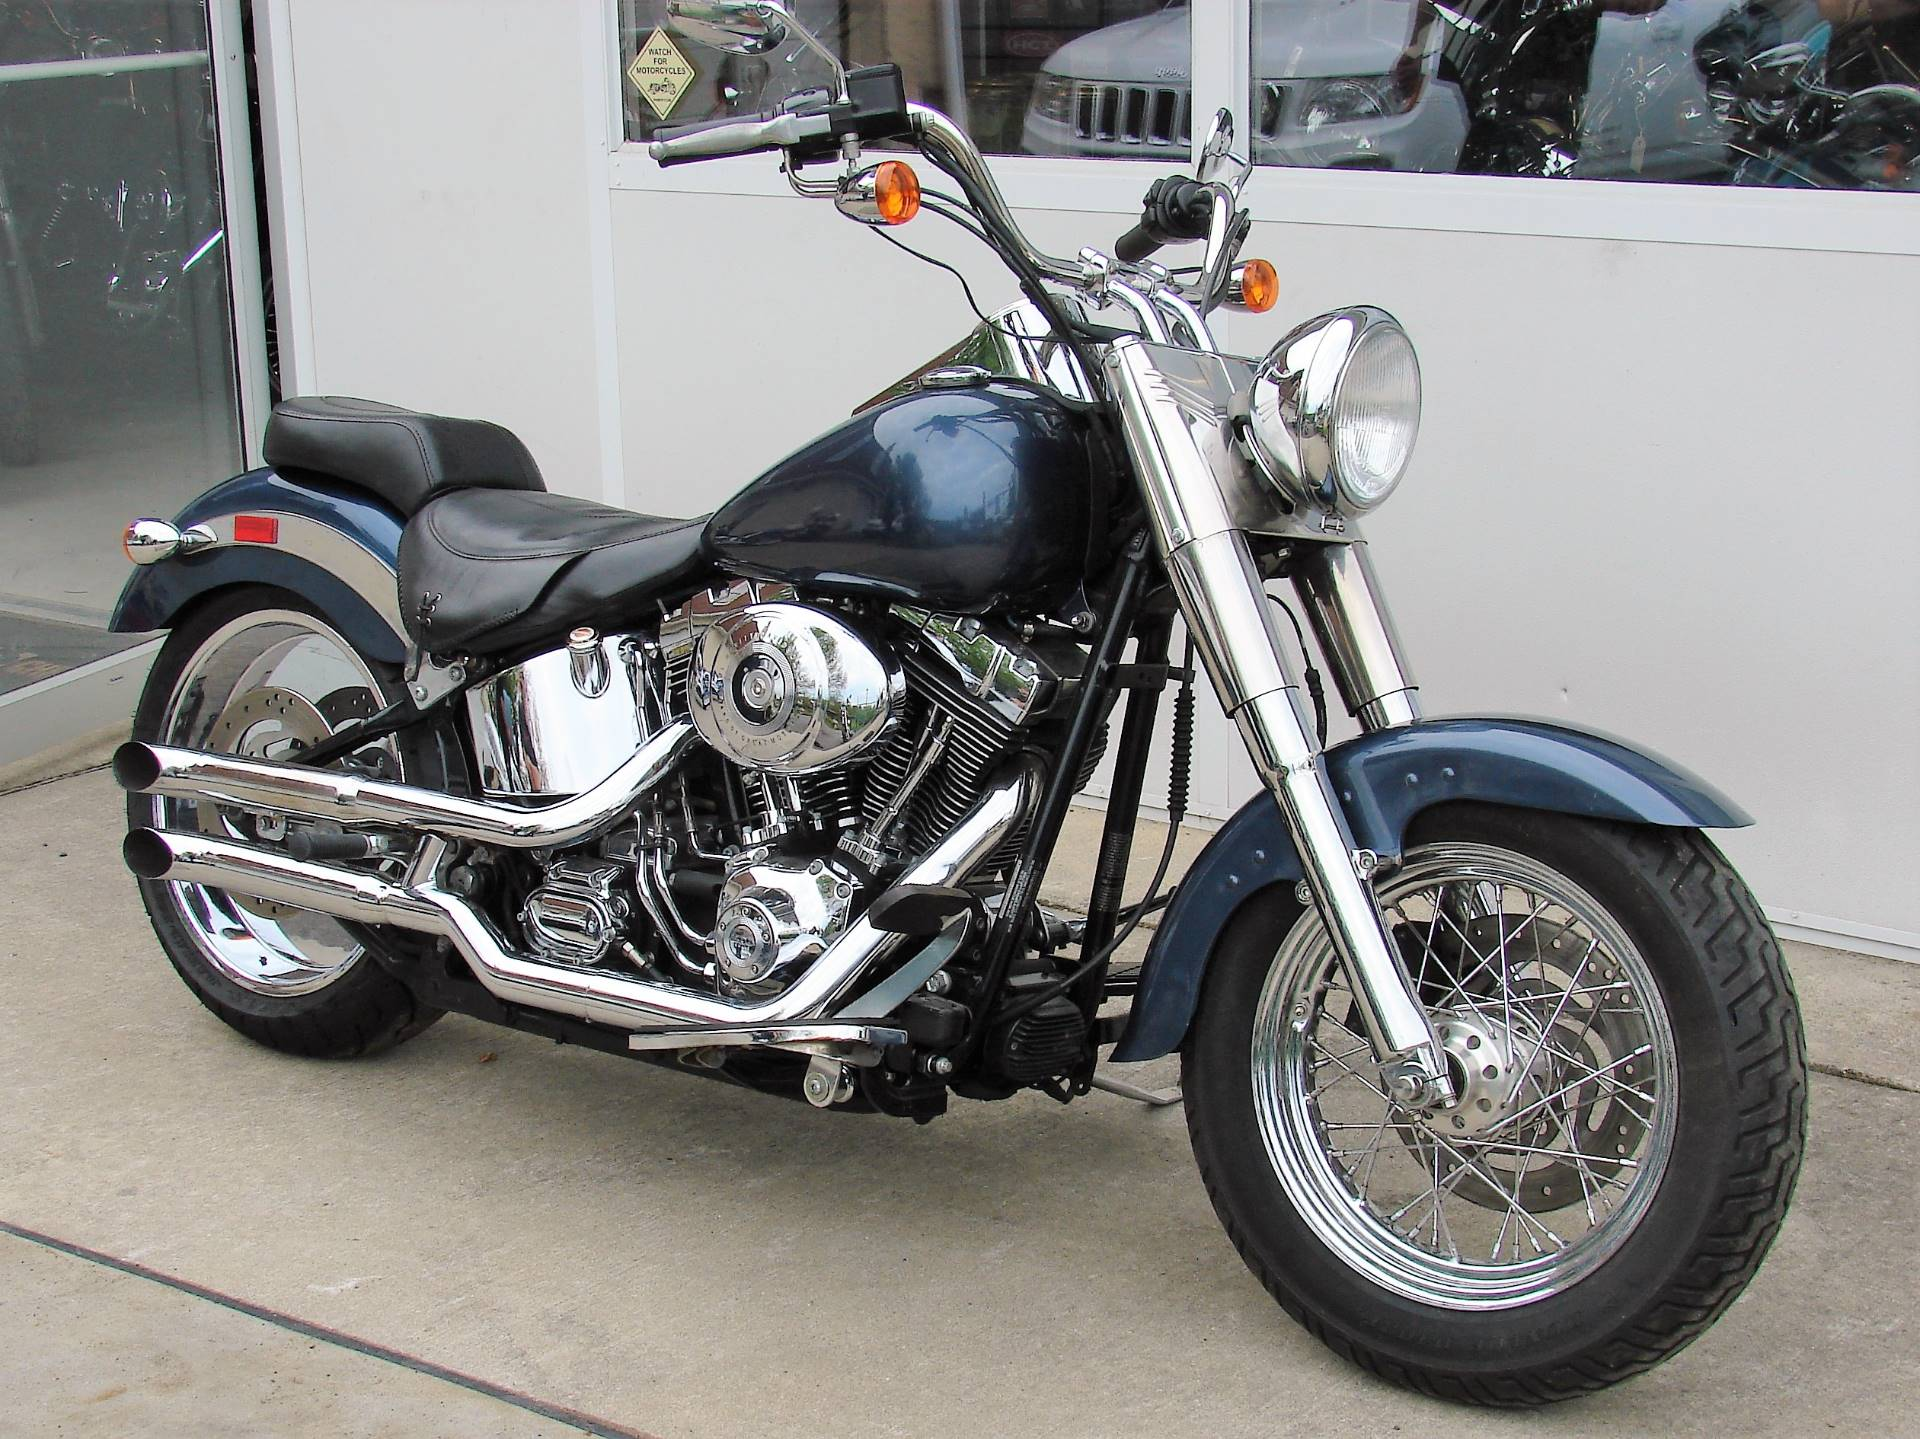 2003 Harley-Davidson Heritage Softail / Fatboy in Williamstown, New Jersey - Photo 3